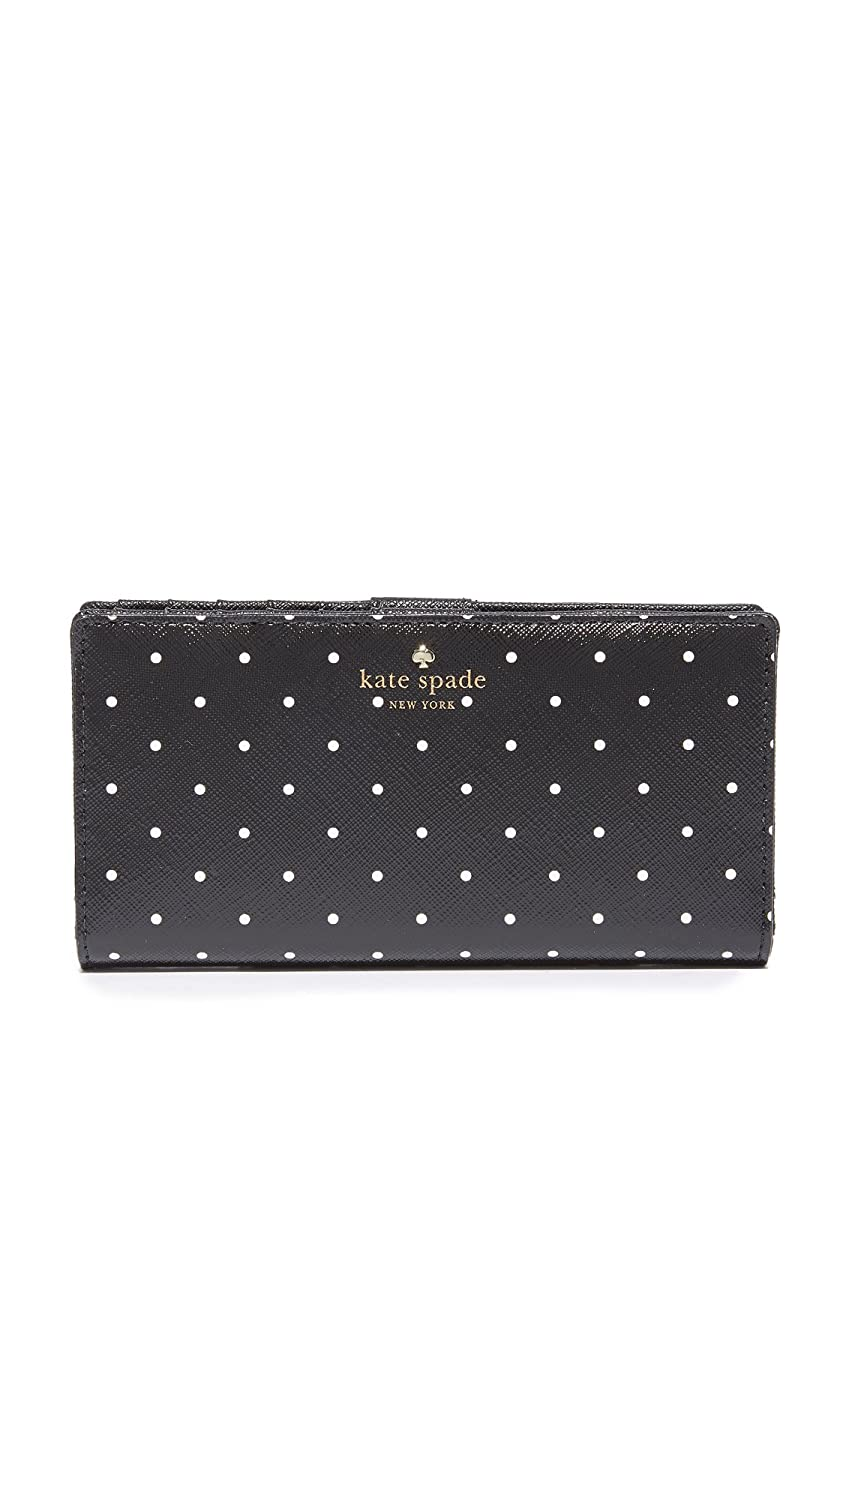 Kate Spade New York Women's Brooks Drive Stacy Wallet Black/Cream One Size PWRU5834-017